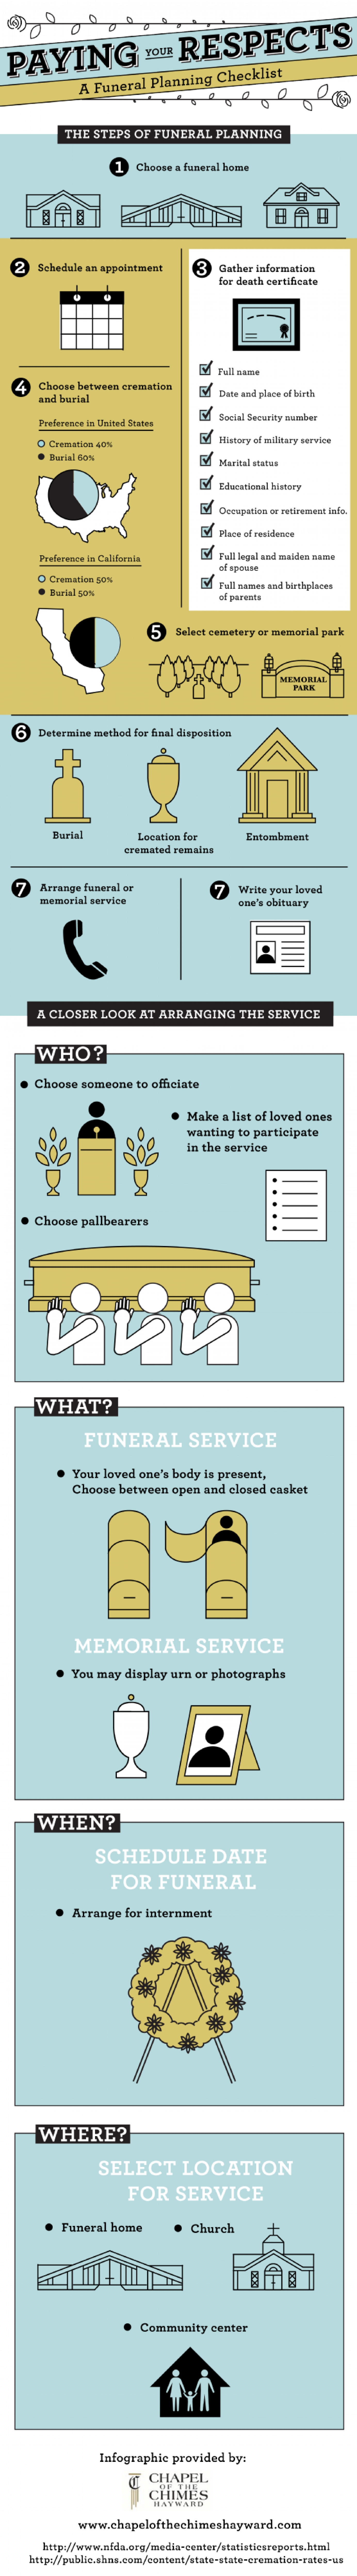 Paying Your Respects: A Funeral Planning Checklist Infographic